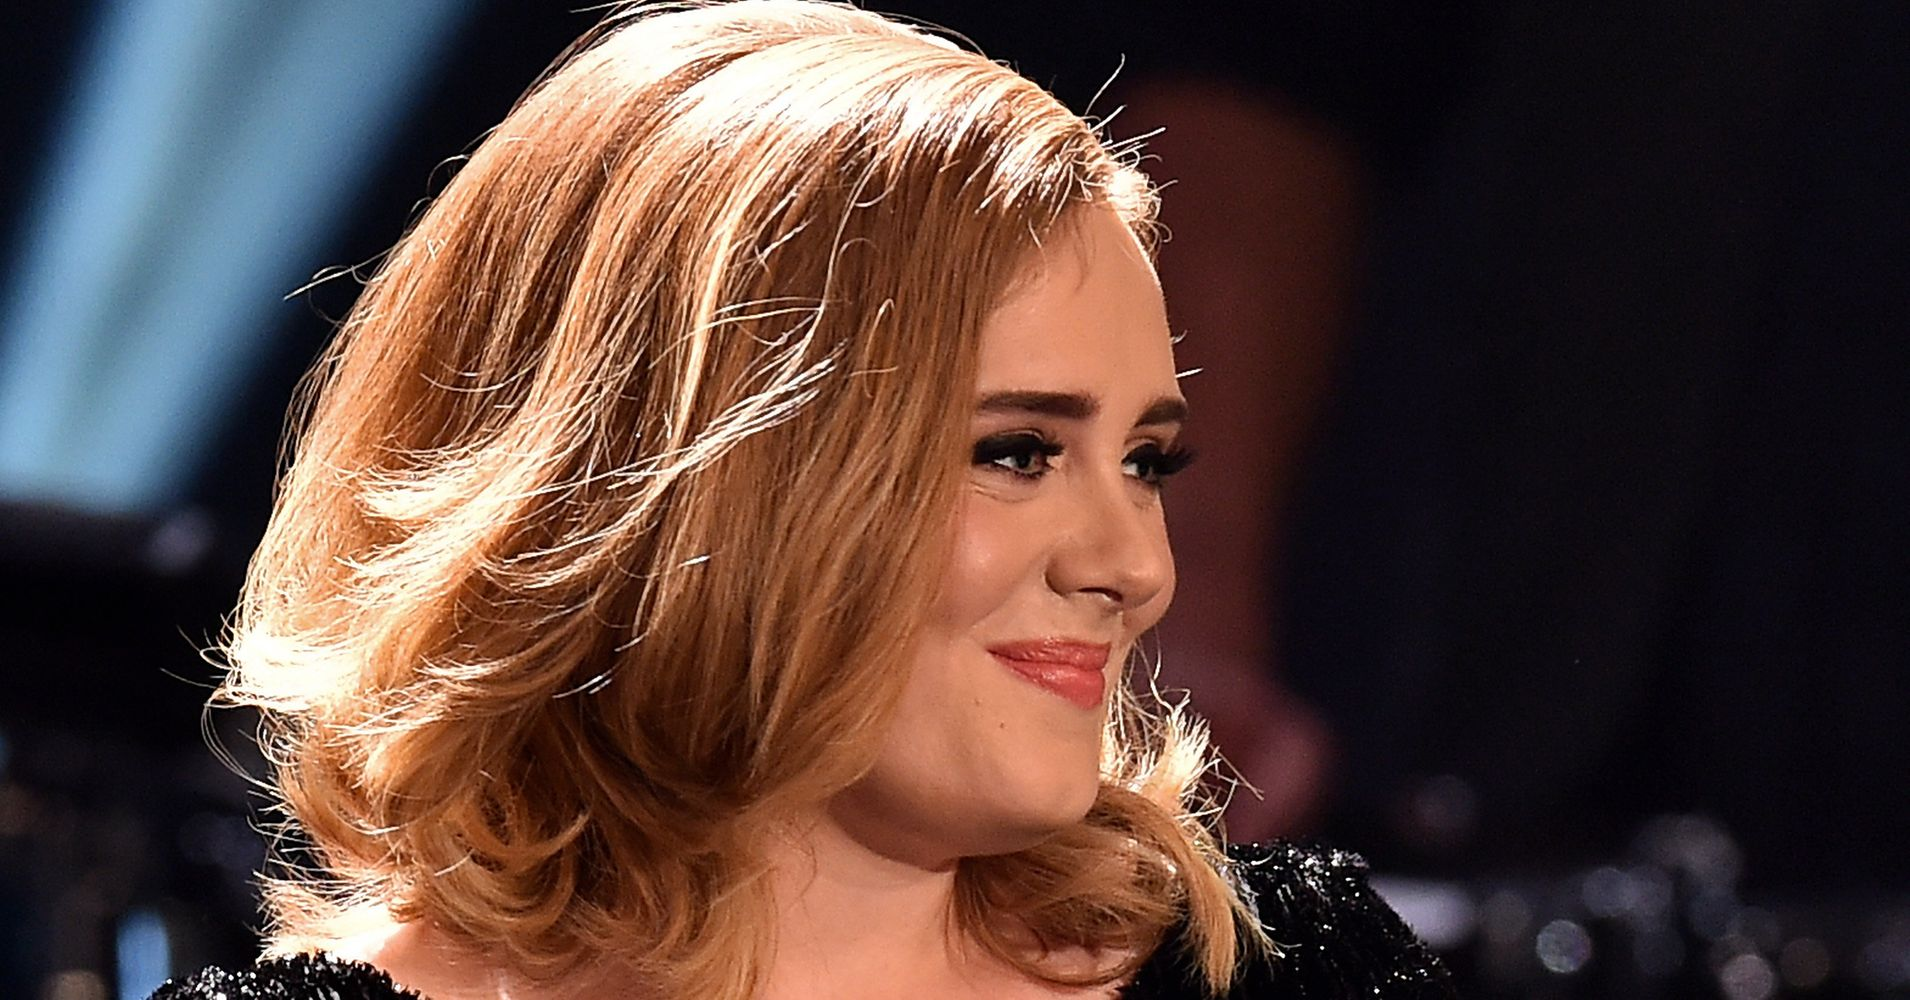 Adele Opens Up About Her Son, Explains The Meaning Behind